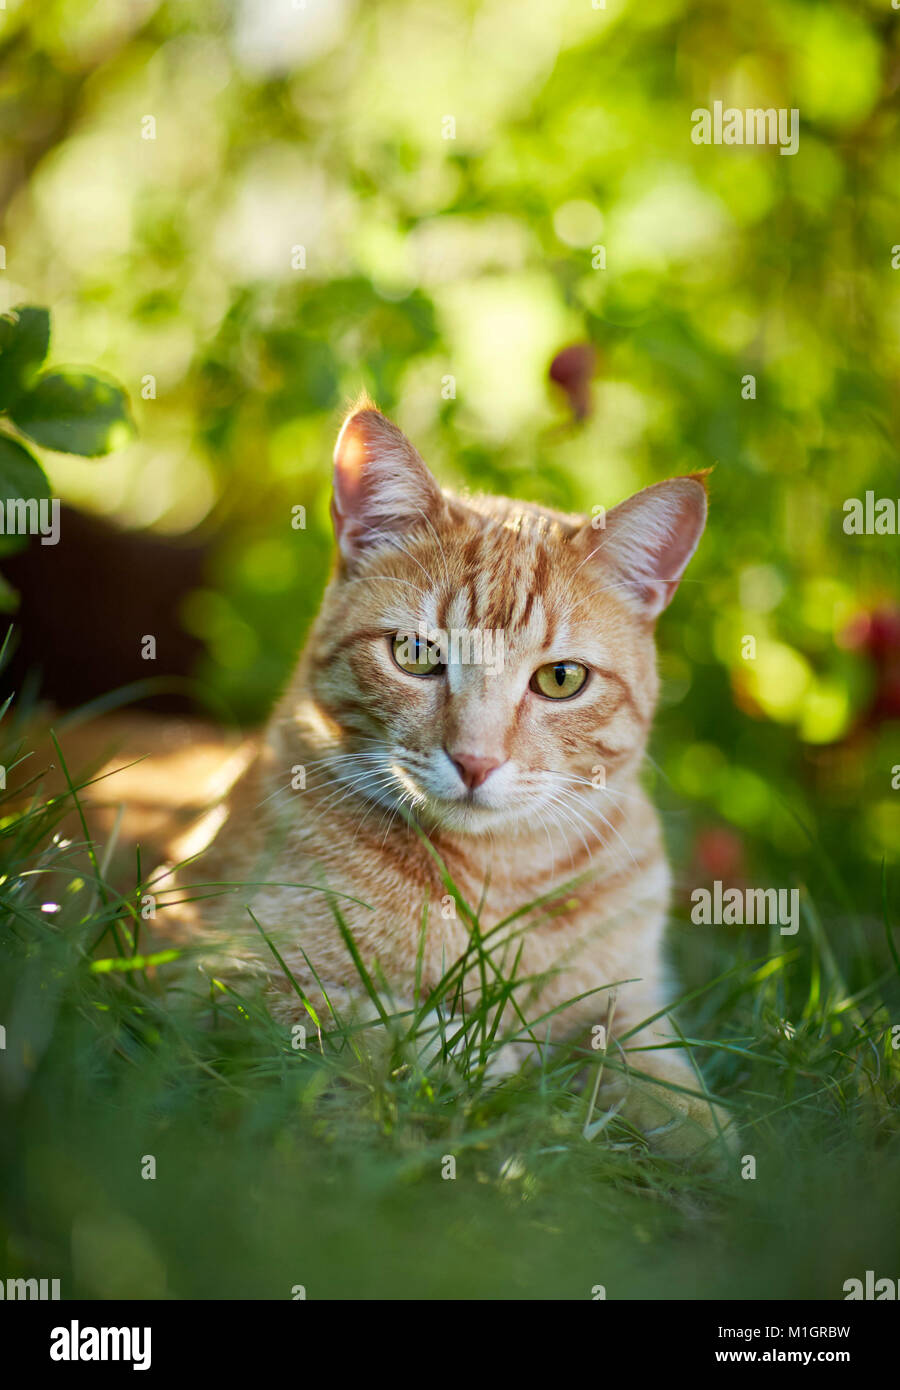 Domestic cat. Red tabby adult lying in grass. Germany. - Stock Image